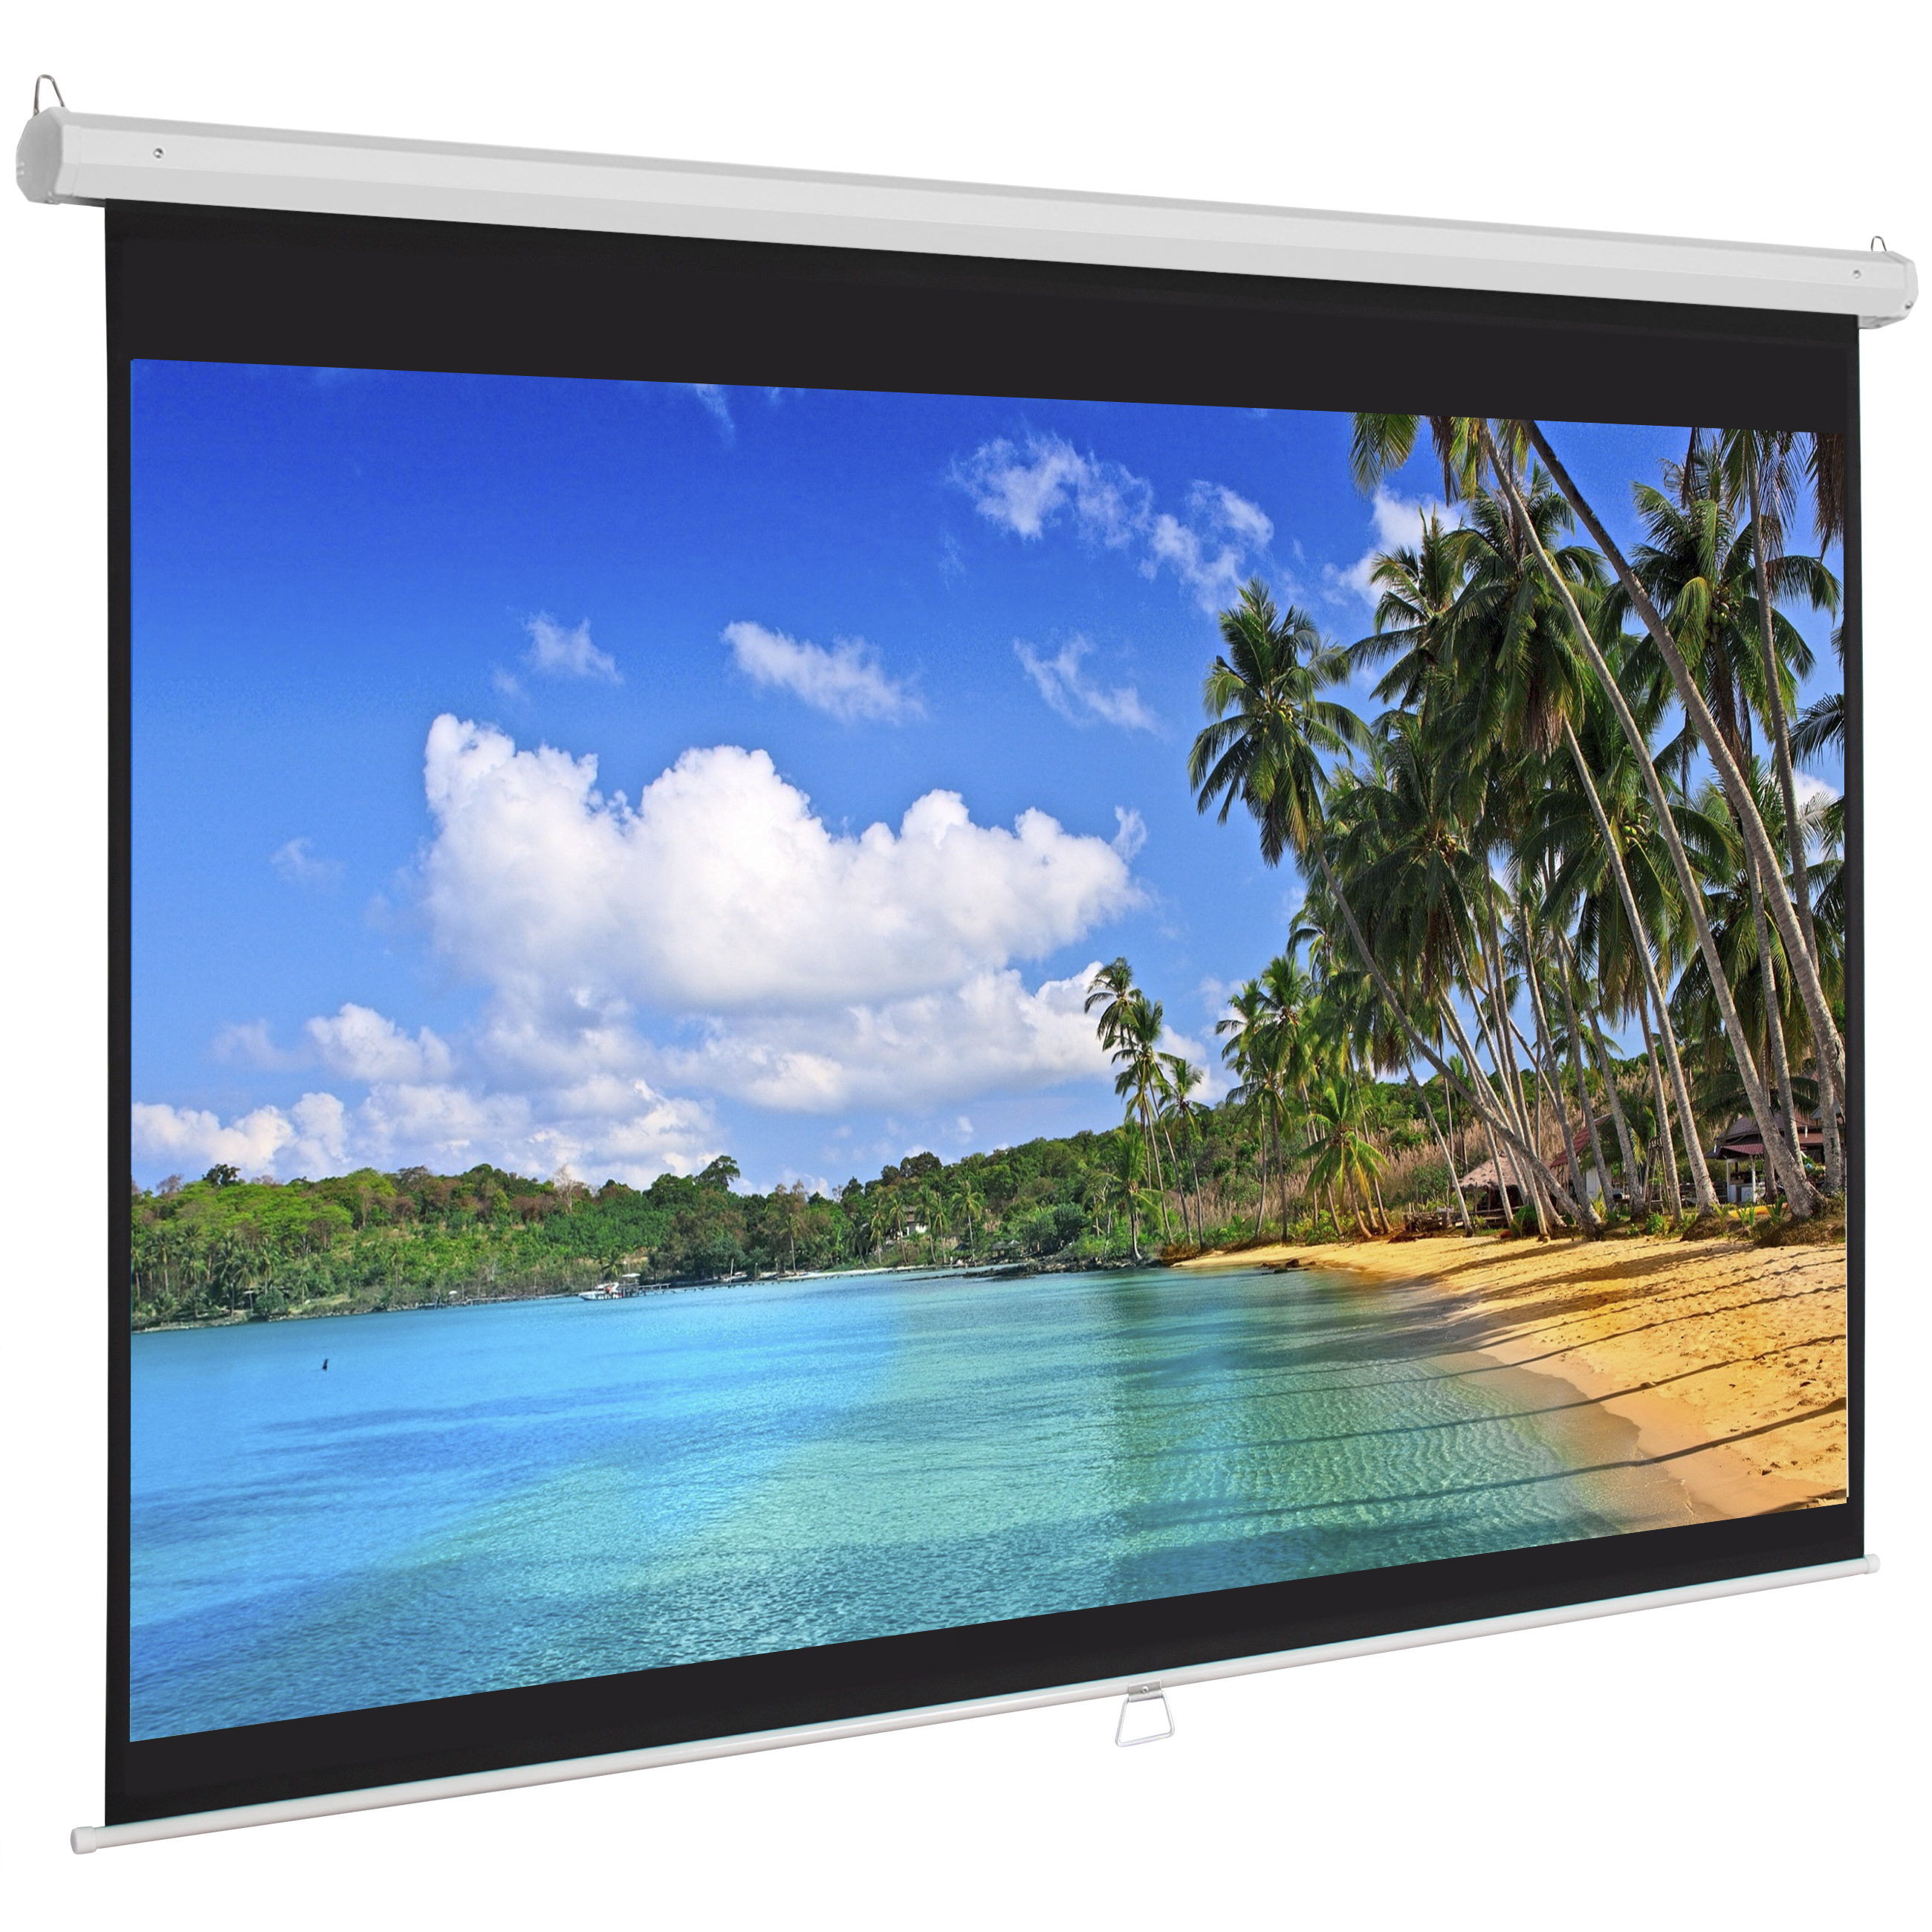 Home movie projection screen